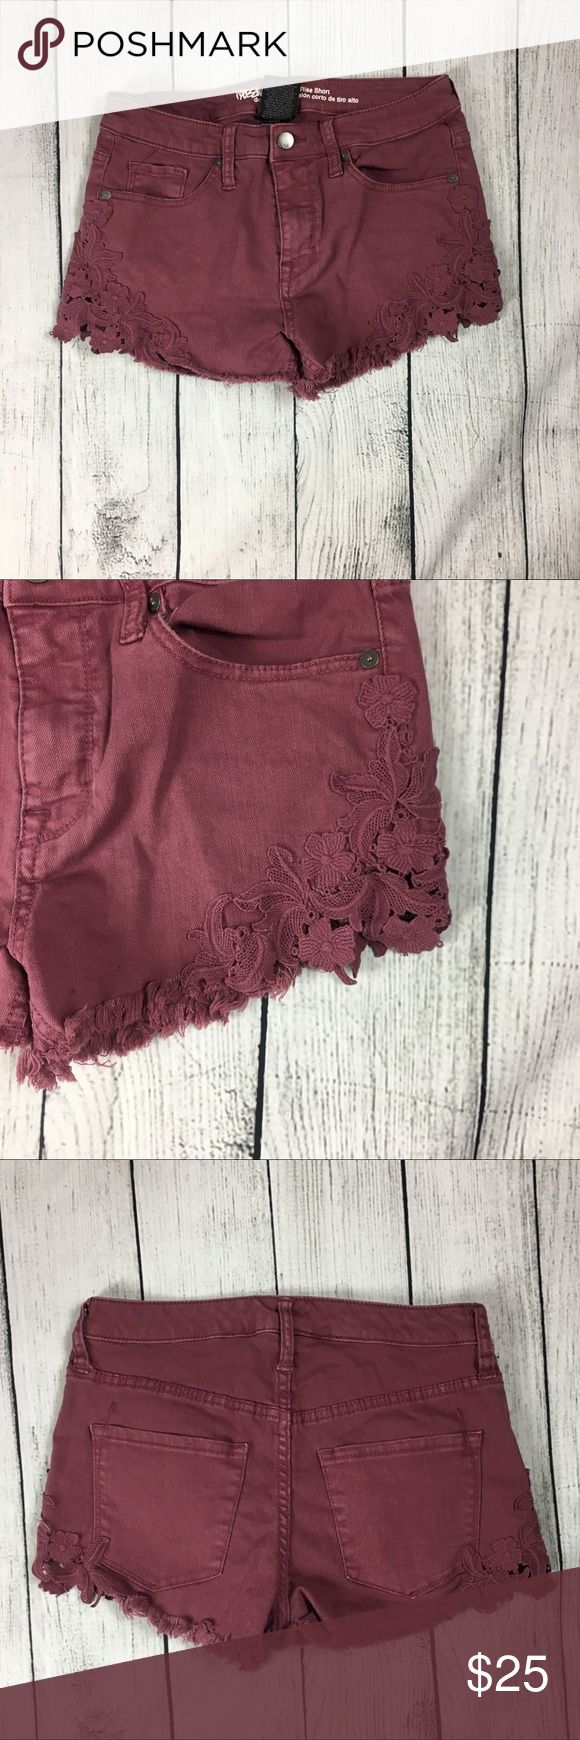 🆕WOT marrón shorts 💕 They are brand new without tags. They are super cute and stylish. They have a lace floral design on side of shorts as shown in pictures above. Made out of  99% cotton and 1% spandex materials. Has 4 usable pockets. They are high rise in style. Mossimo Supply Co. Shorts Jean Shorts